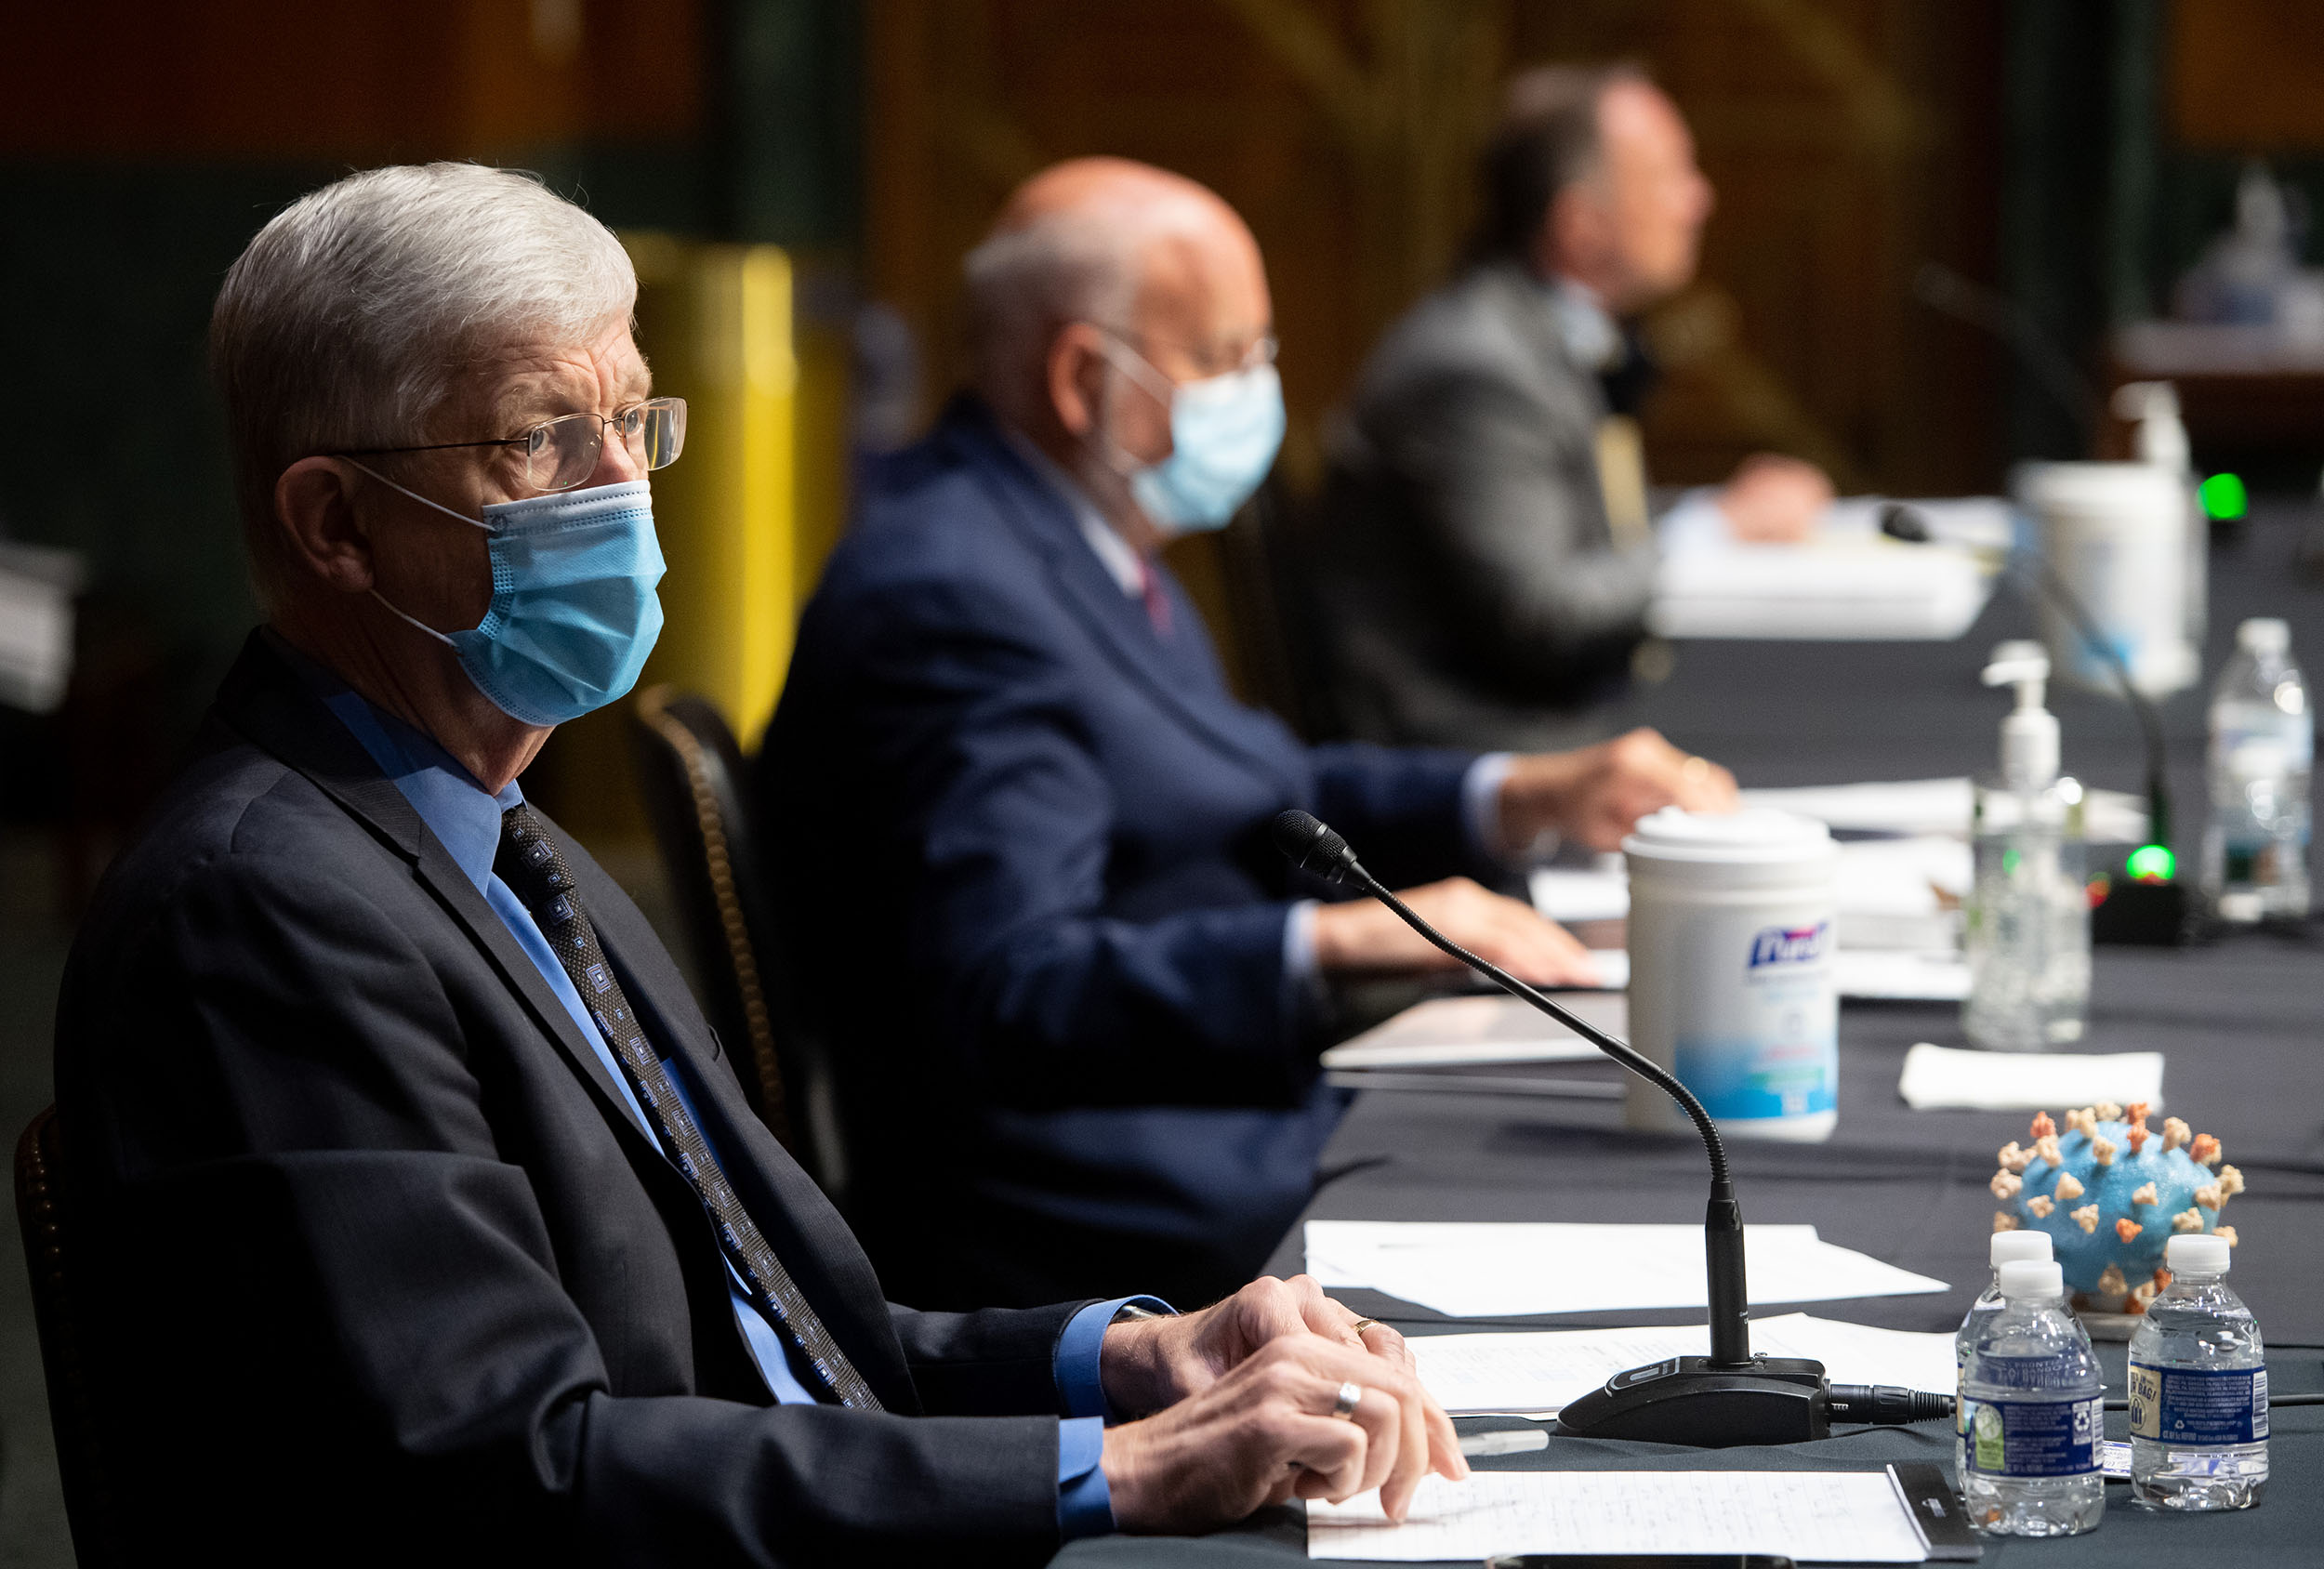 Francis Collins, director of the National Institutes of Health, wears a protective mask during a Senate Appropriations Subcommittee hearing in Washington, DC, on July 2.